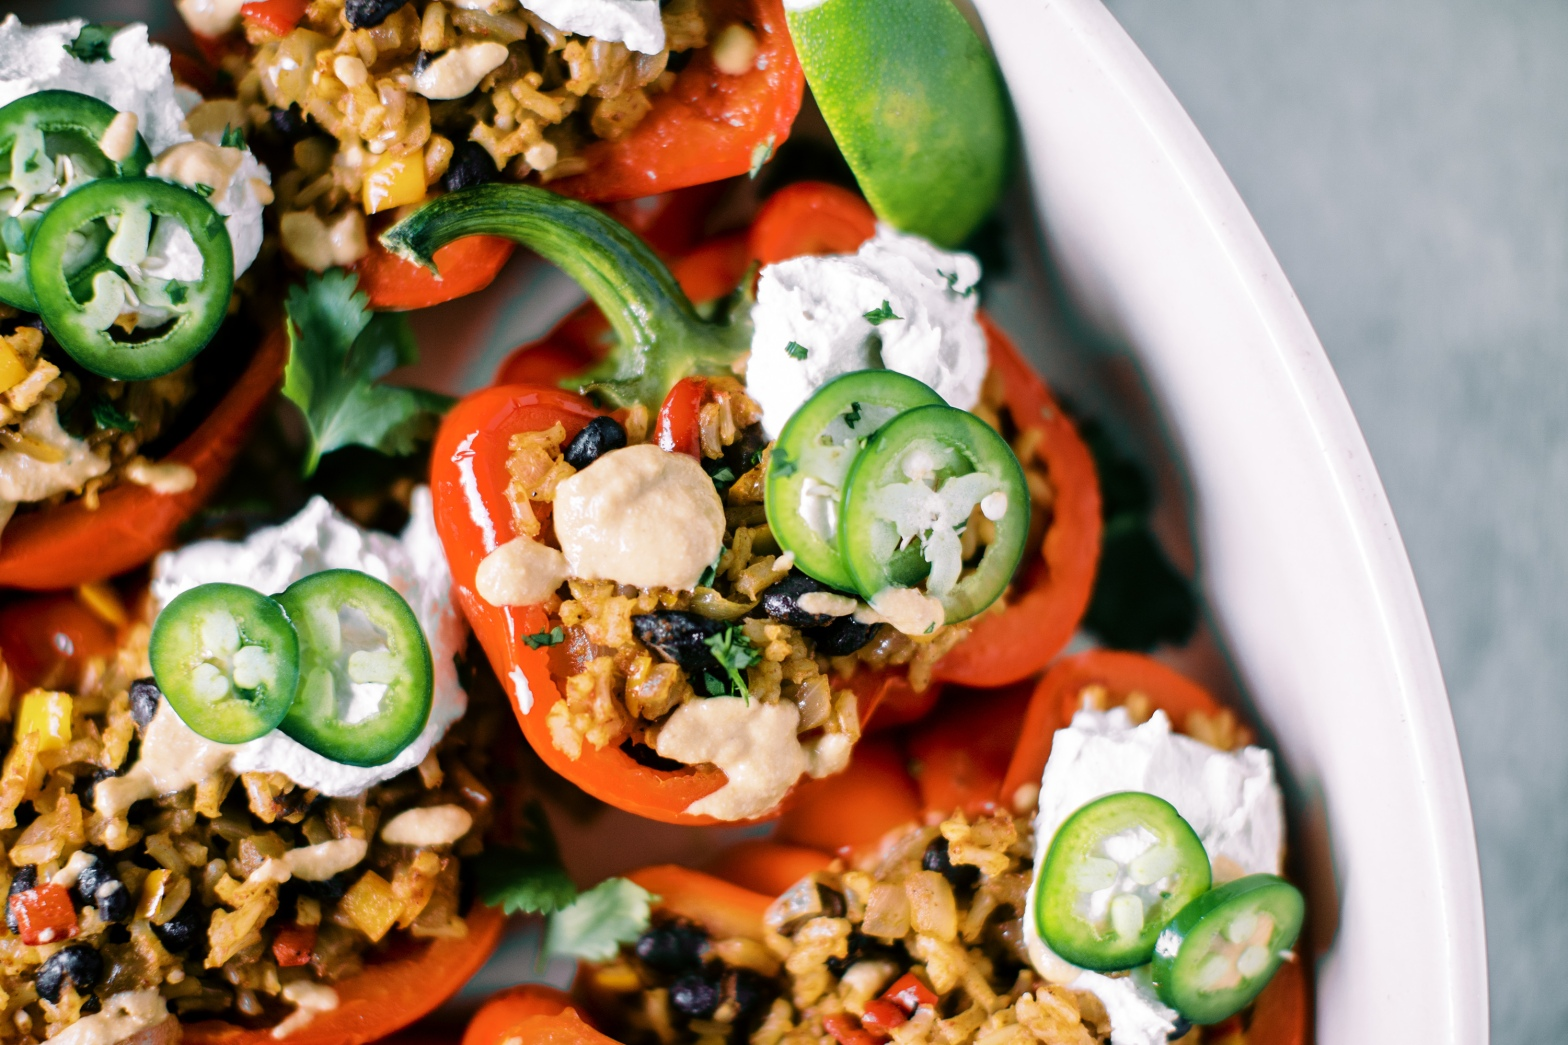 Vegan Southwestern Stuffed Peppers